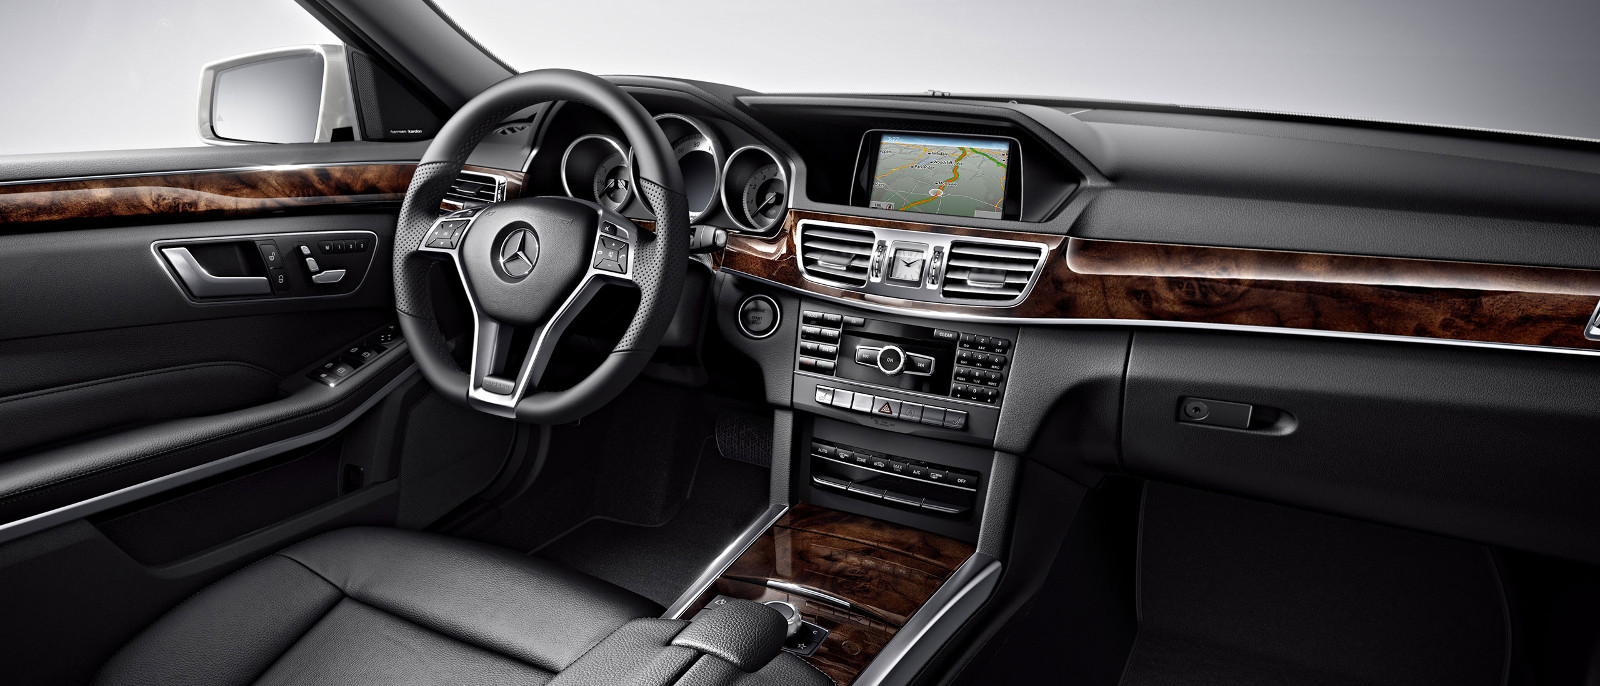 2015 Mercedes-Benz E400 4matic Interior